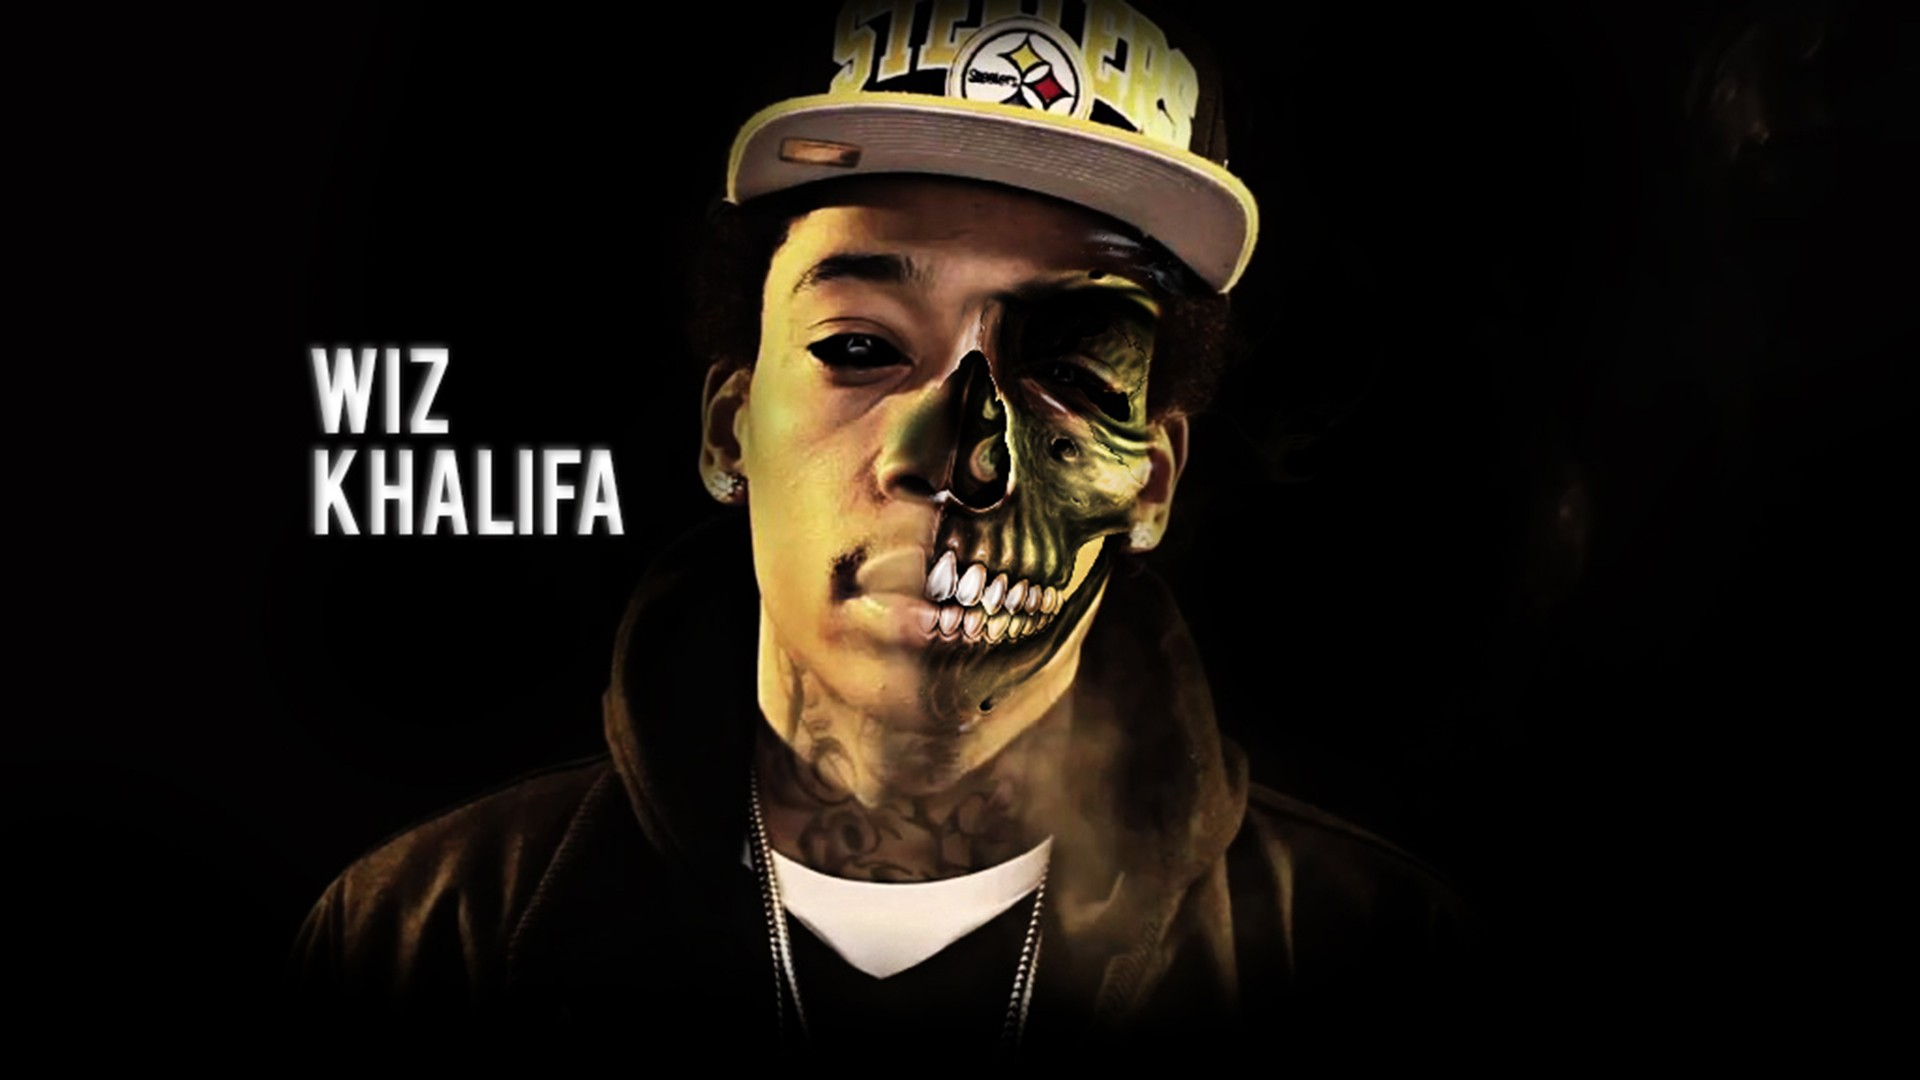 Wallpaper iphone wiz khalifa - Wiz Khalifa Wallpapers